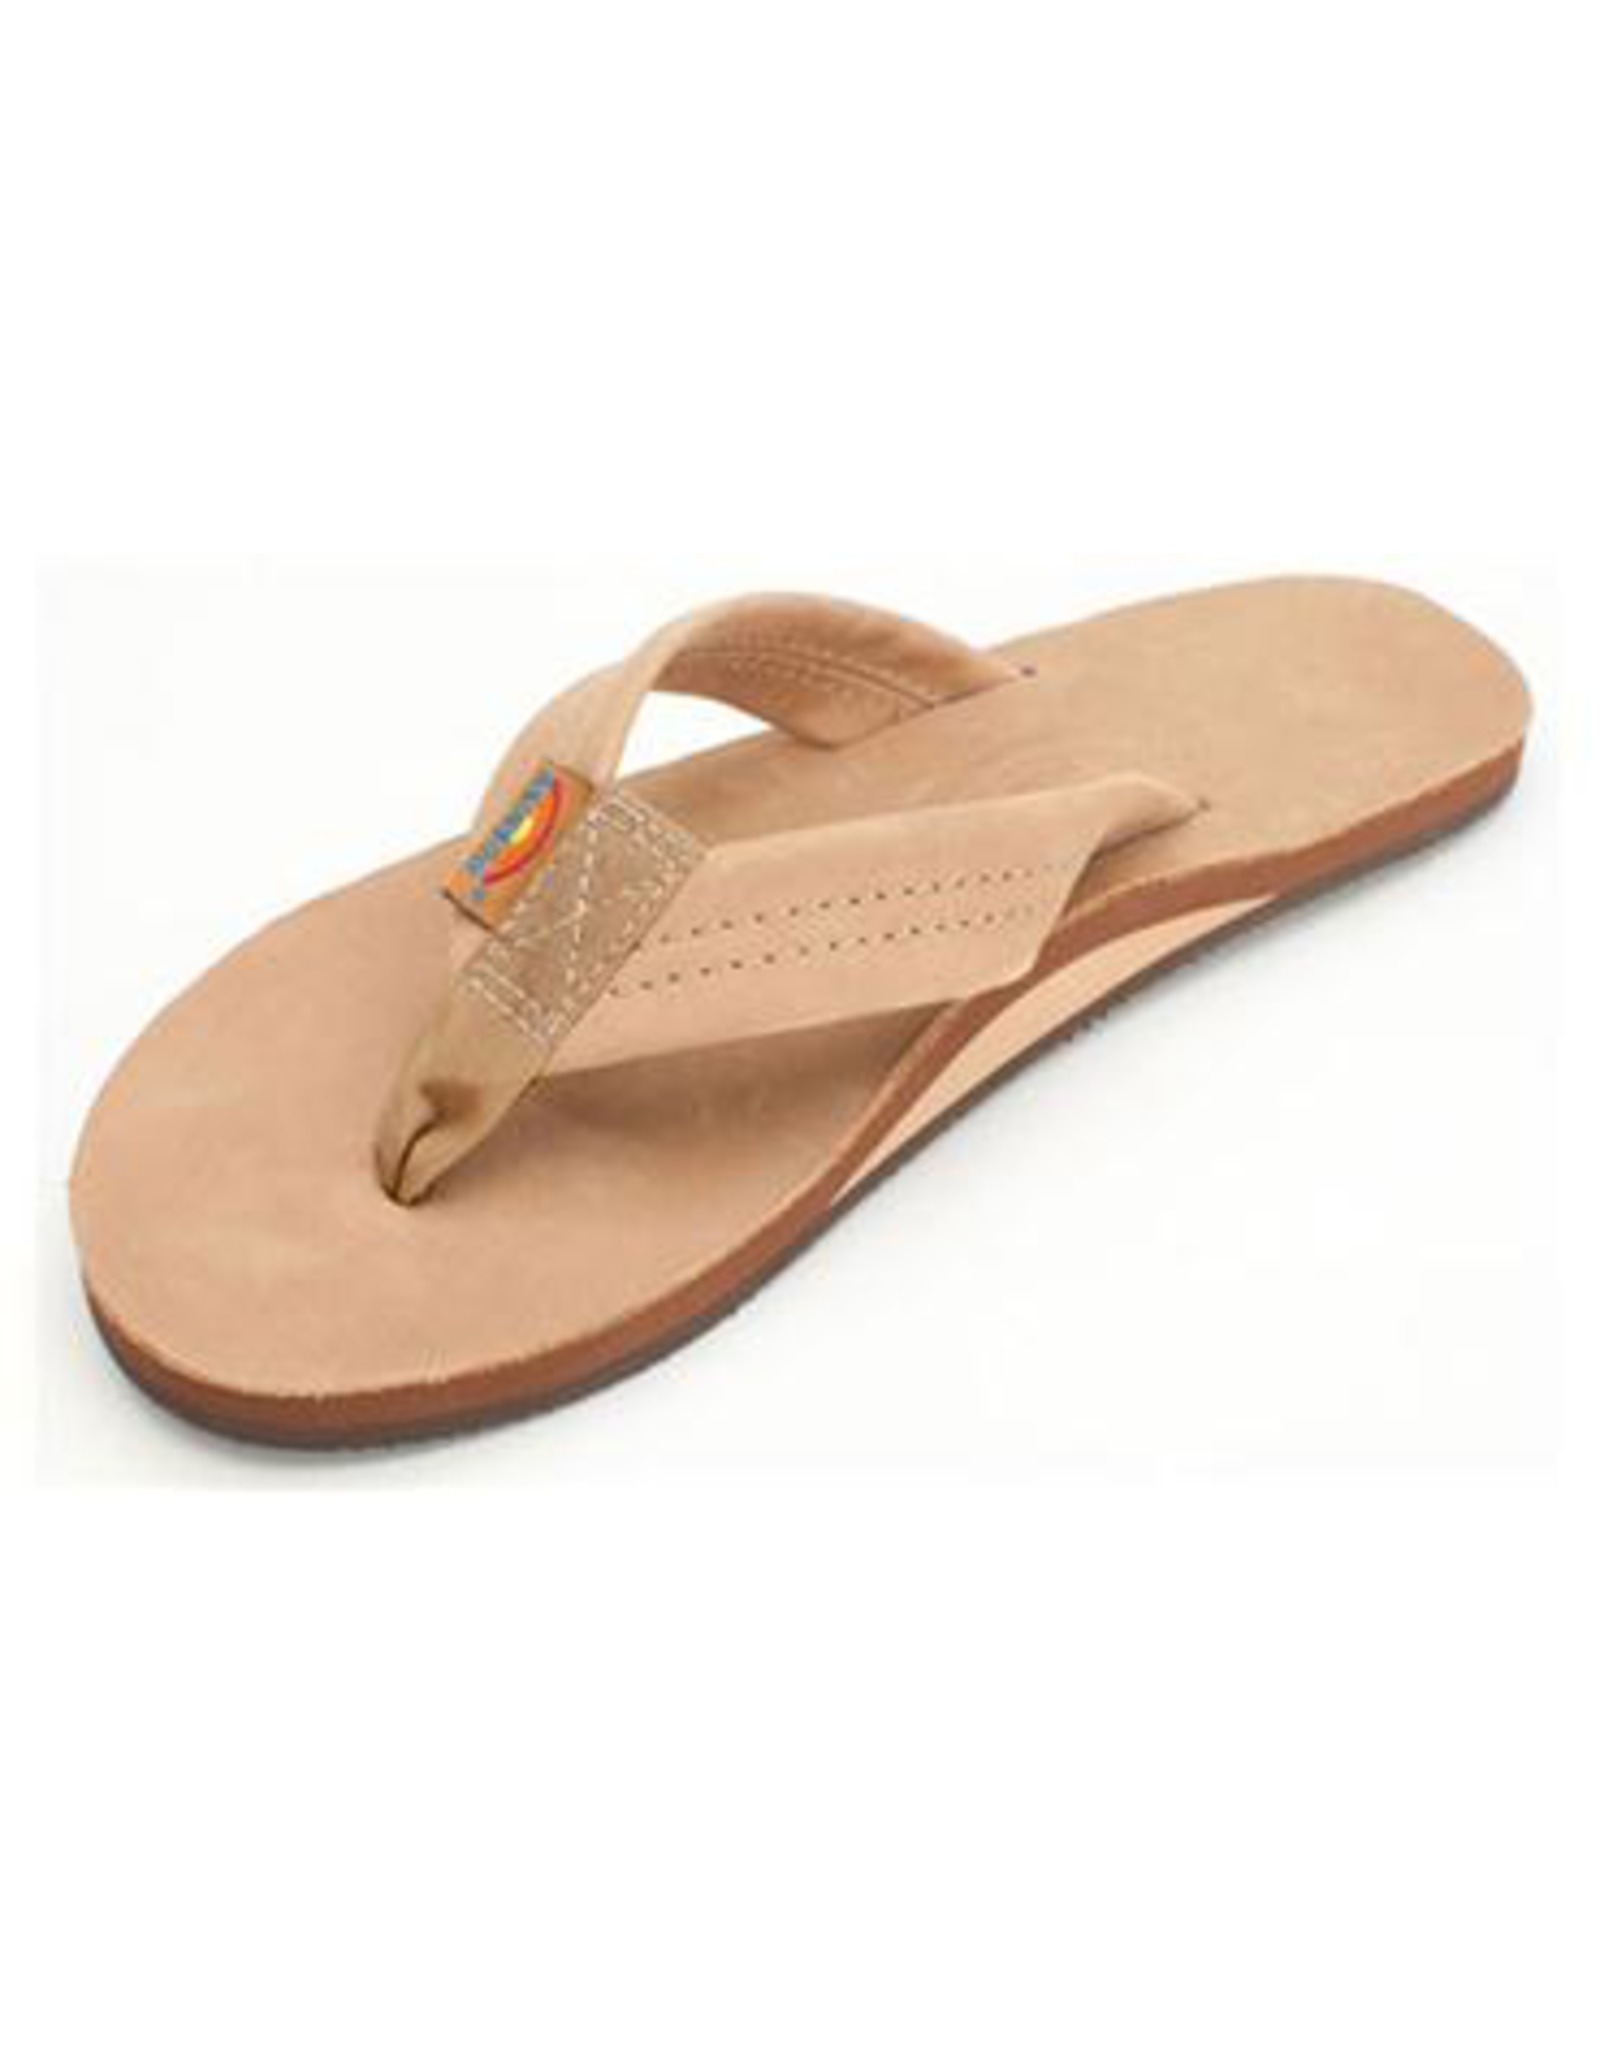 LADIES RAINBOW SINGLE LAYER PREMIER LEATHER WITH ARCH SUPPORT